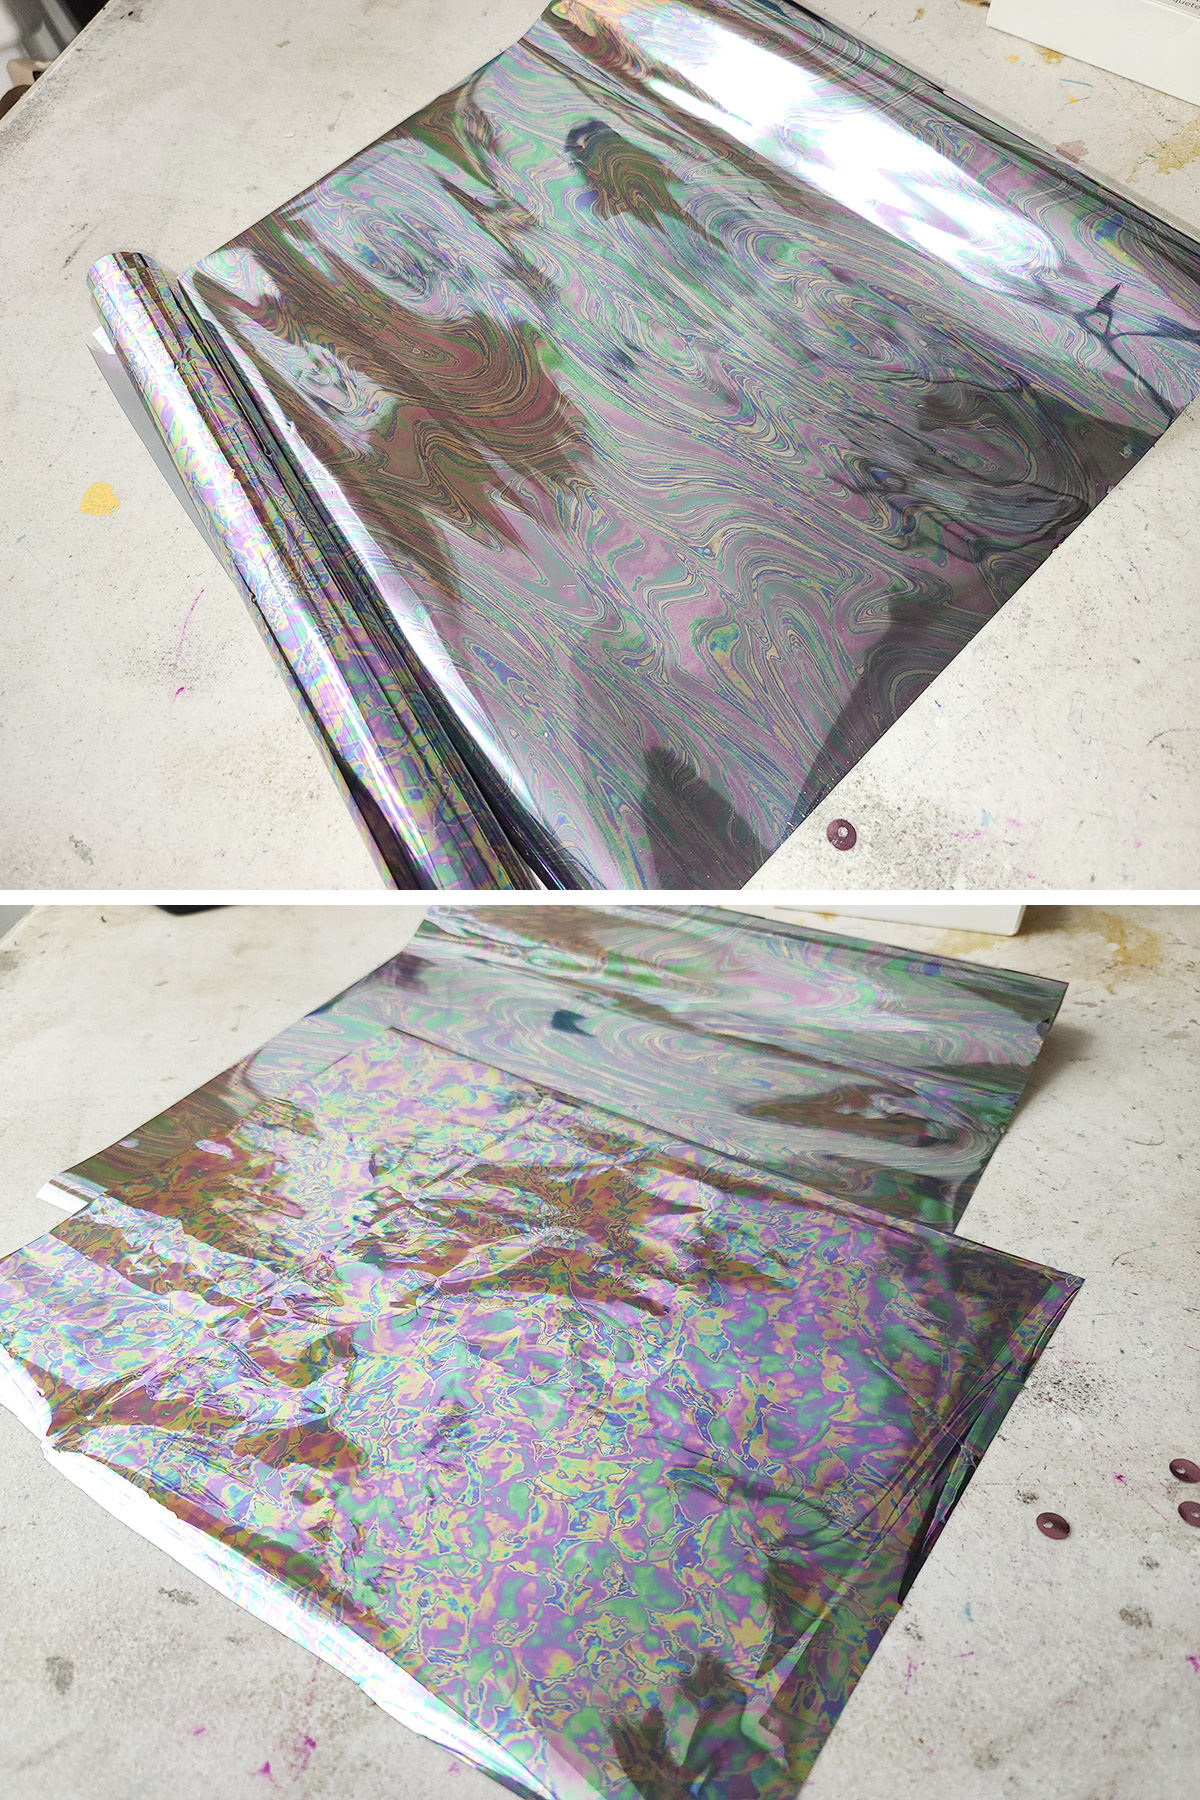 Two different views of silver/rainbow holographic foil paper.